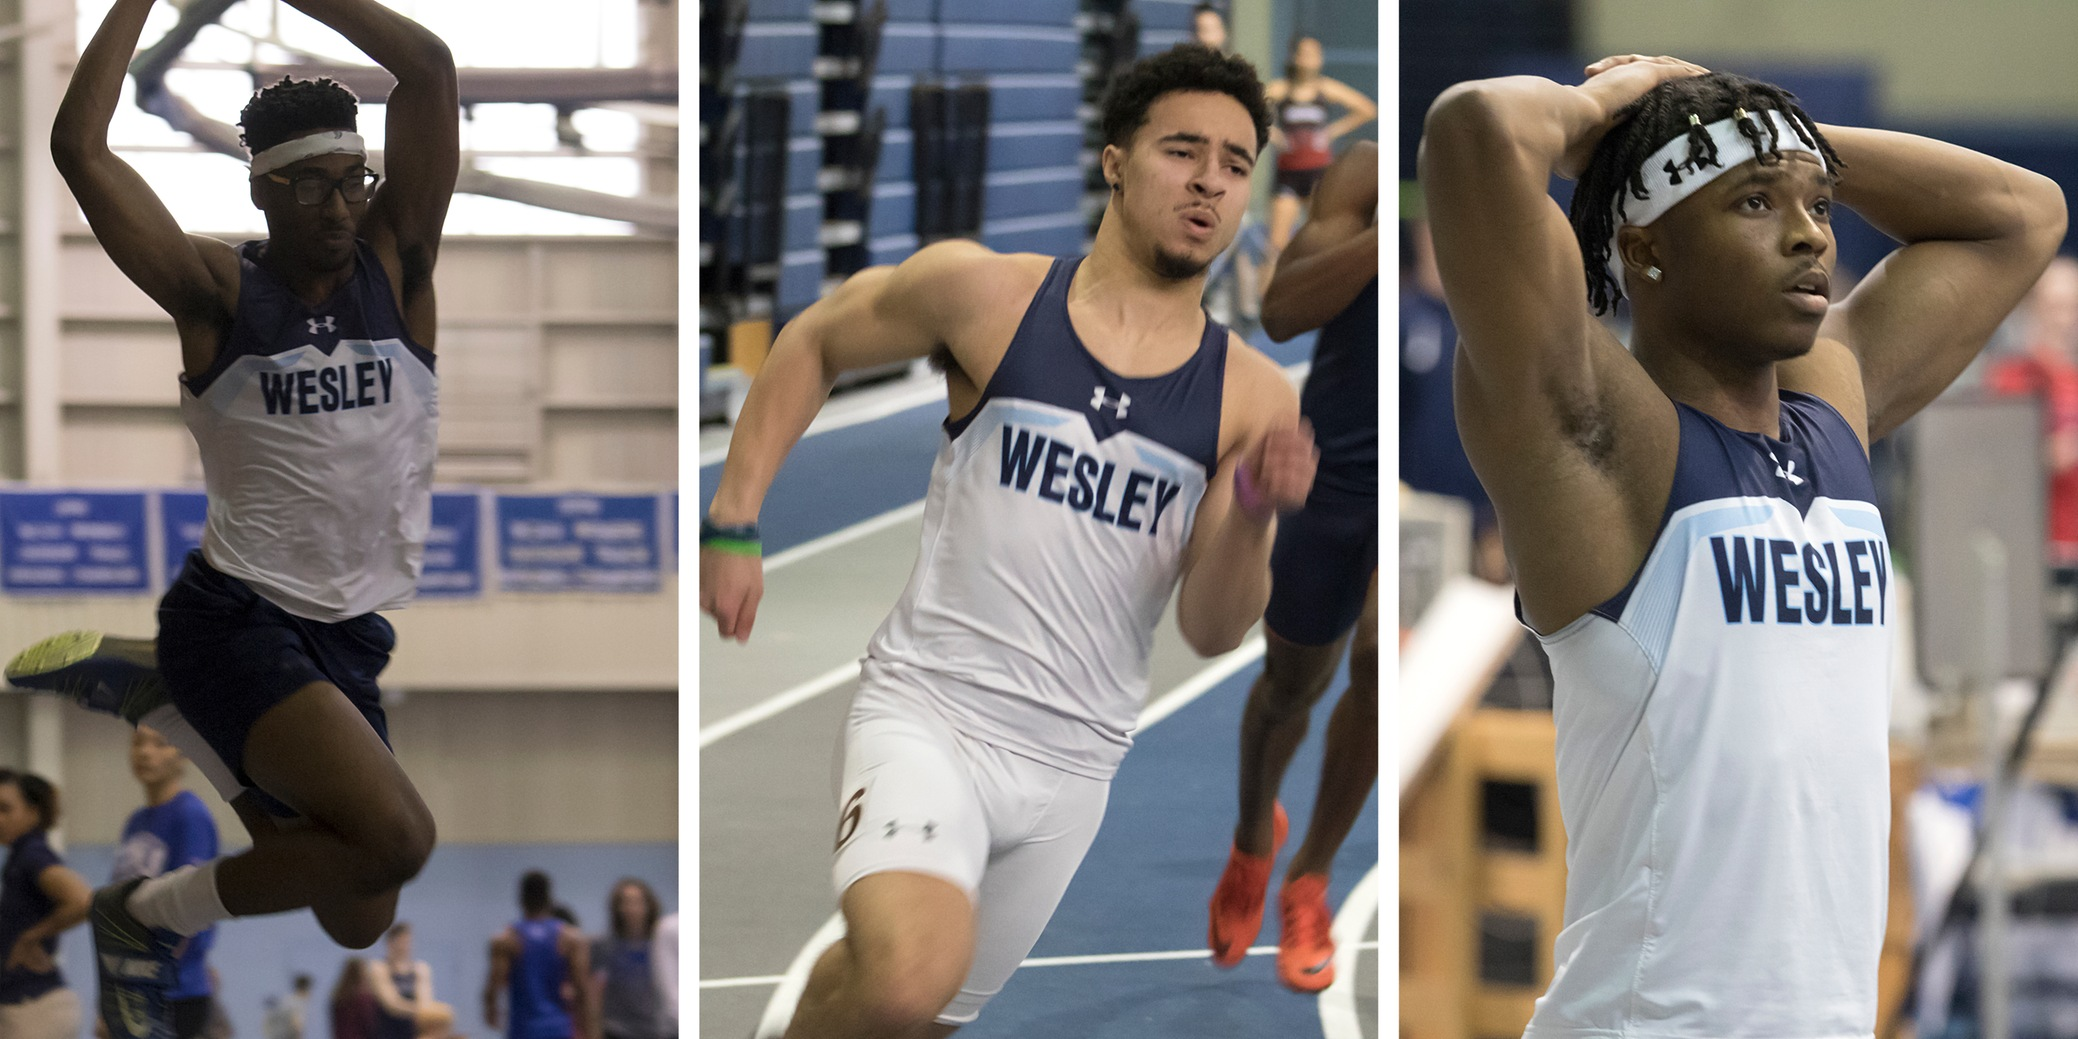 Wesley men place second at CAC Indoor Championships